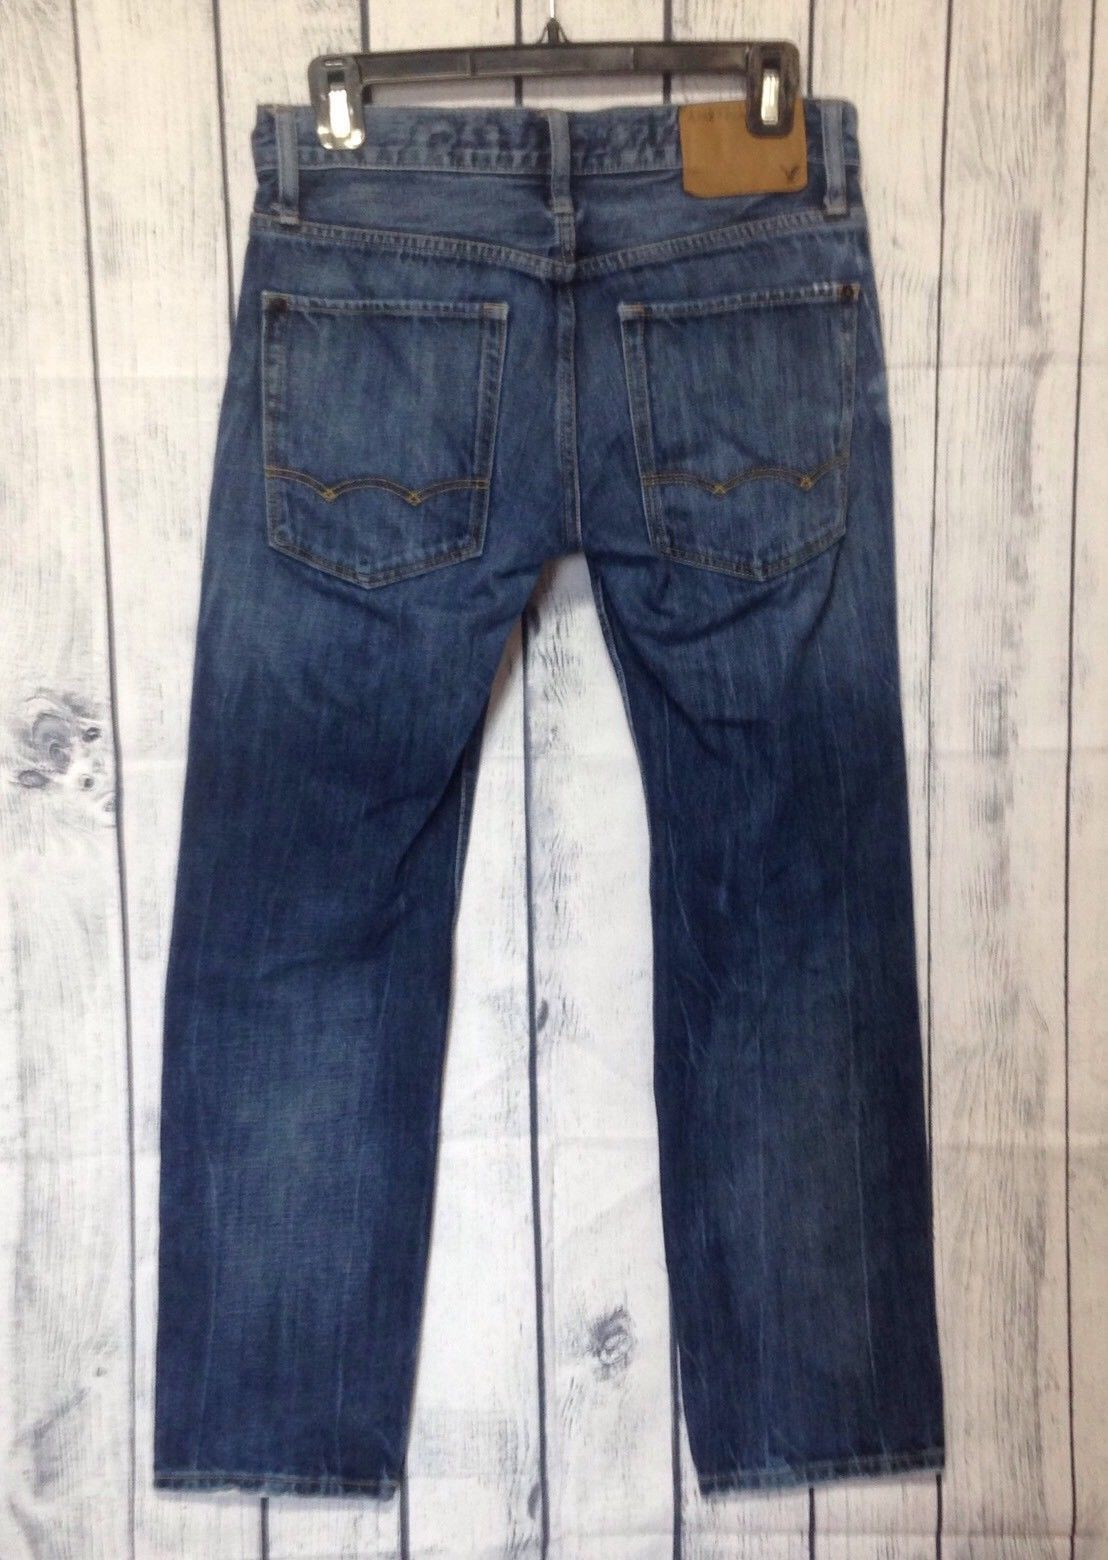 American Eagle Jeans Mens 28x28 Act 32x27 Slim Fit Destroyed Dark Blue Wash